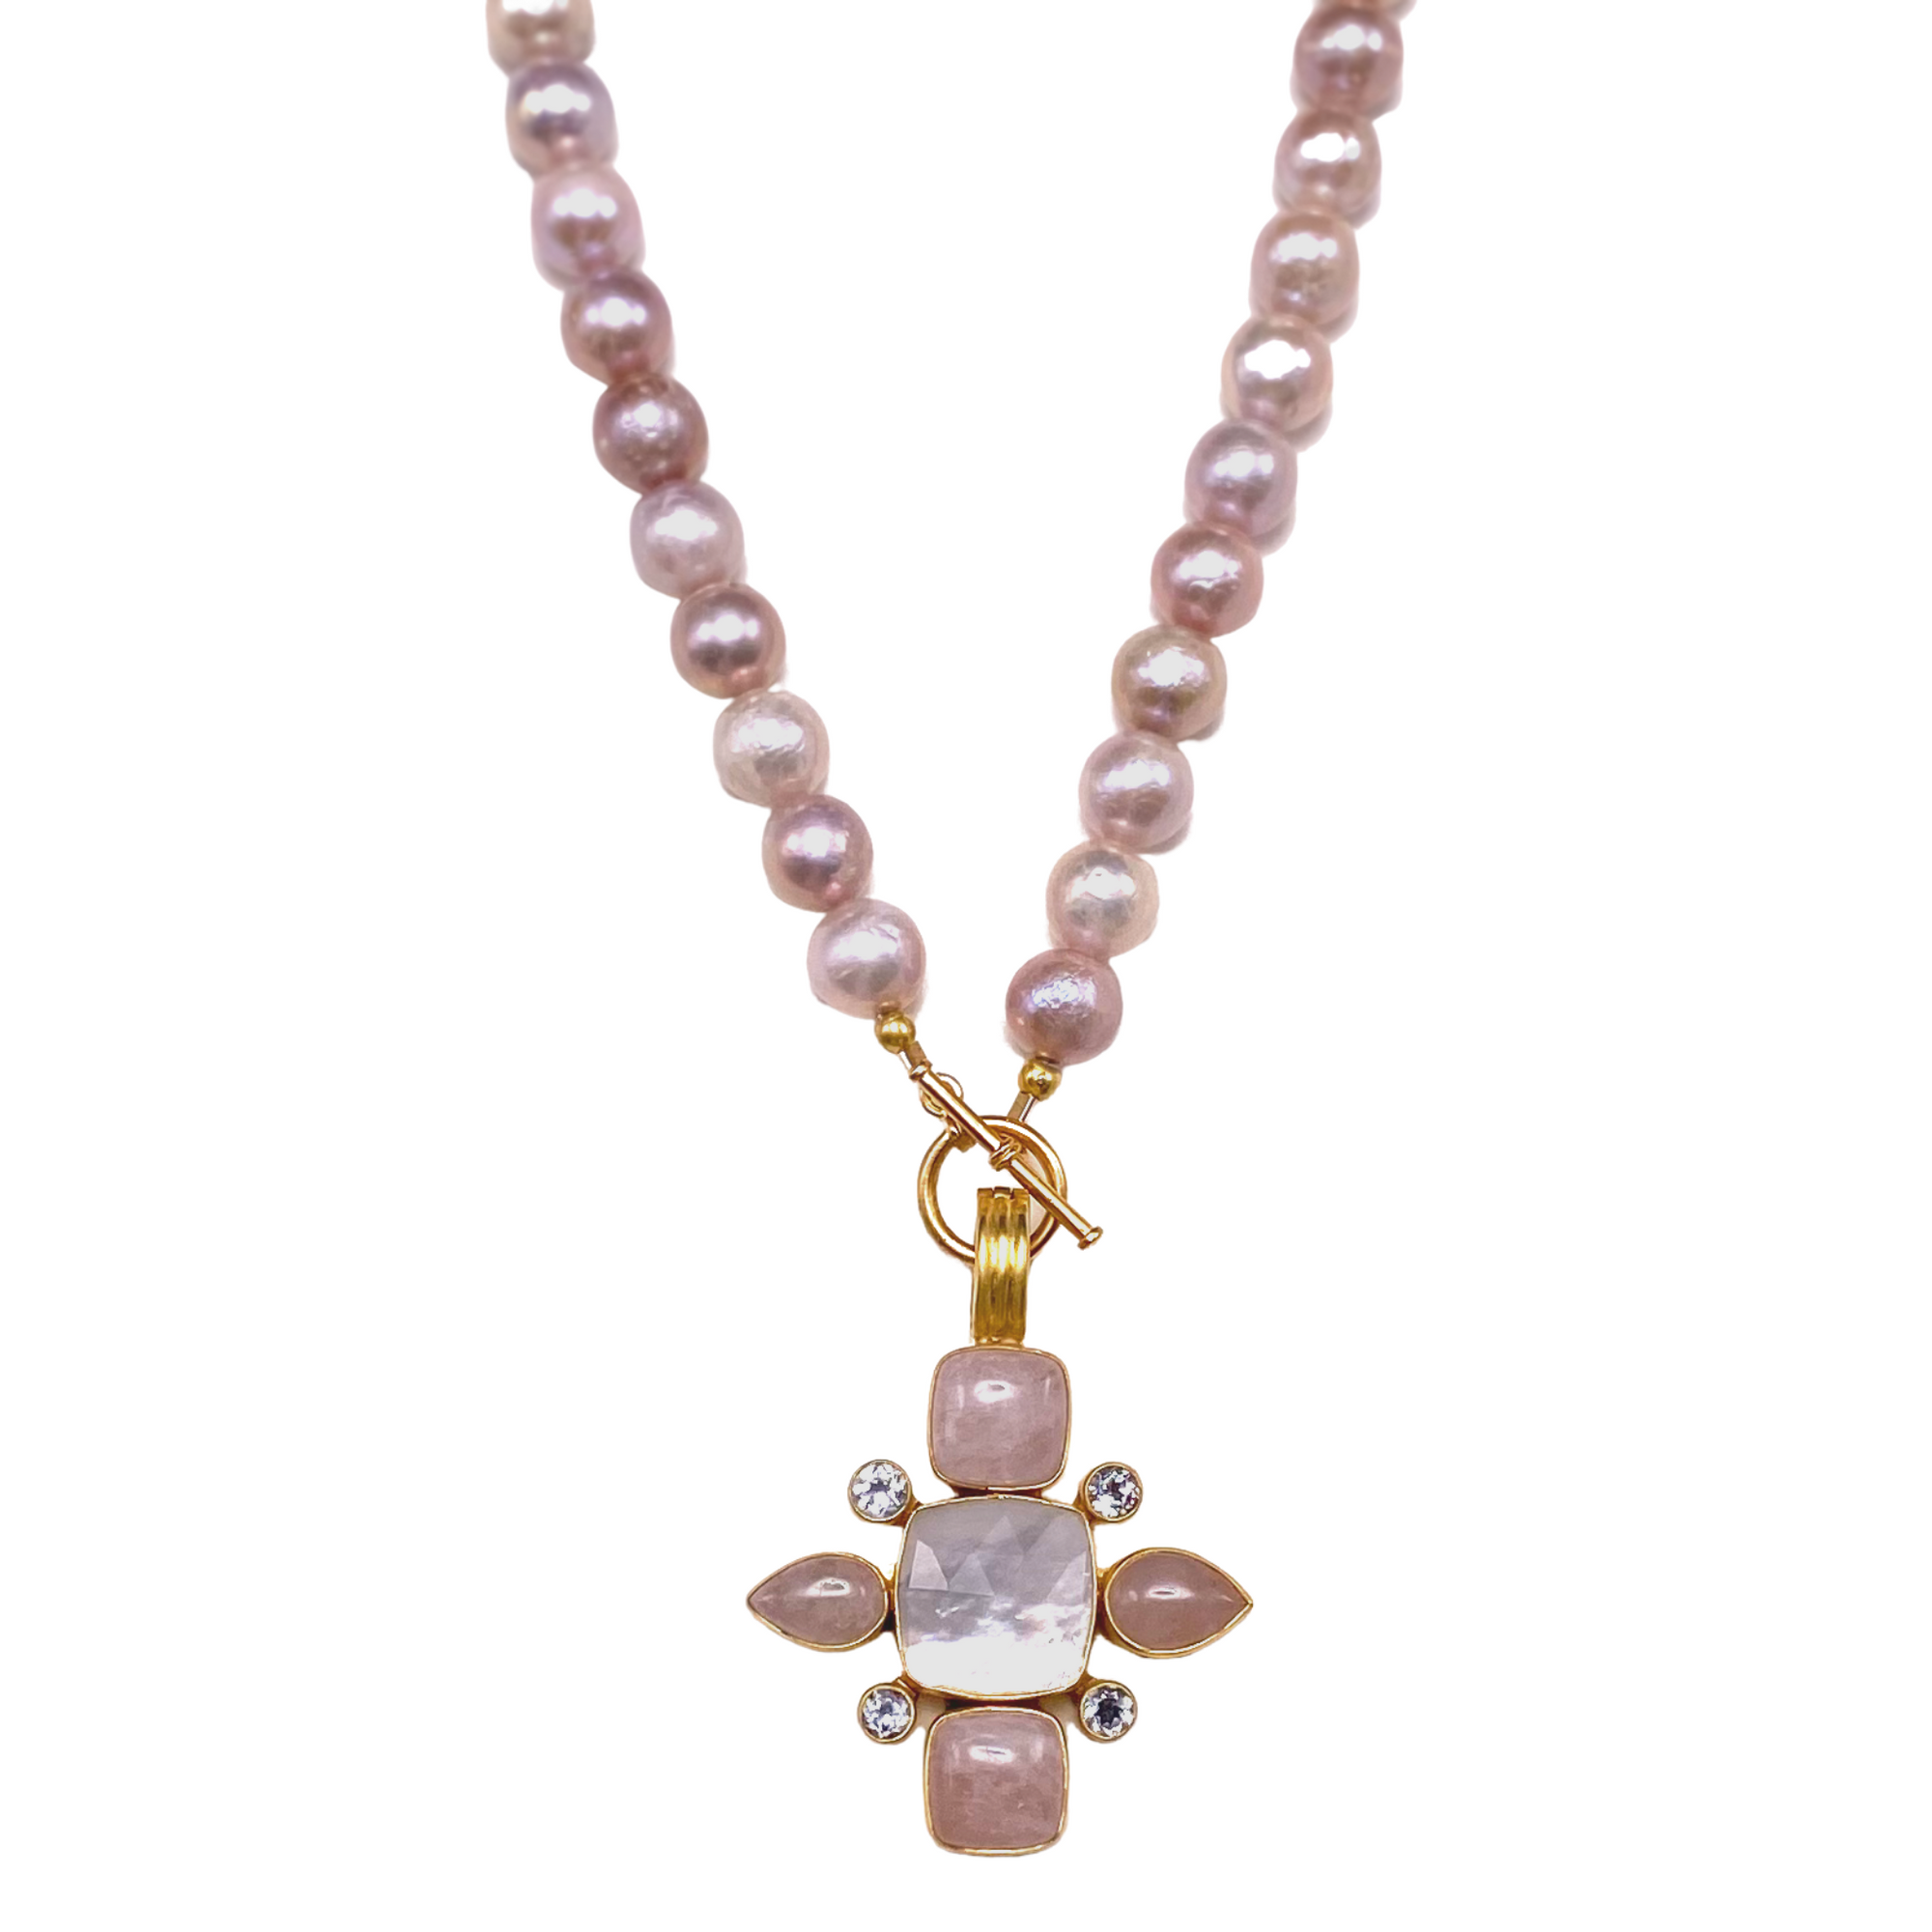 Kunzite and Pearl Necklace